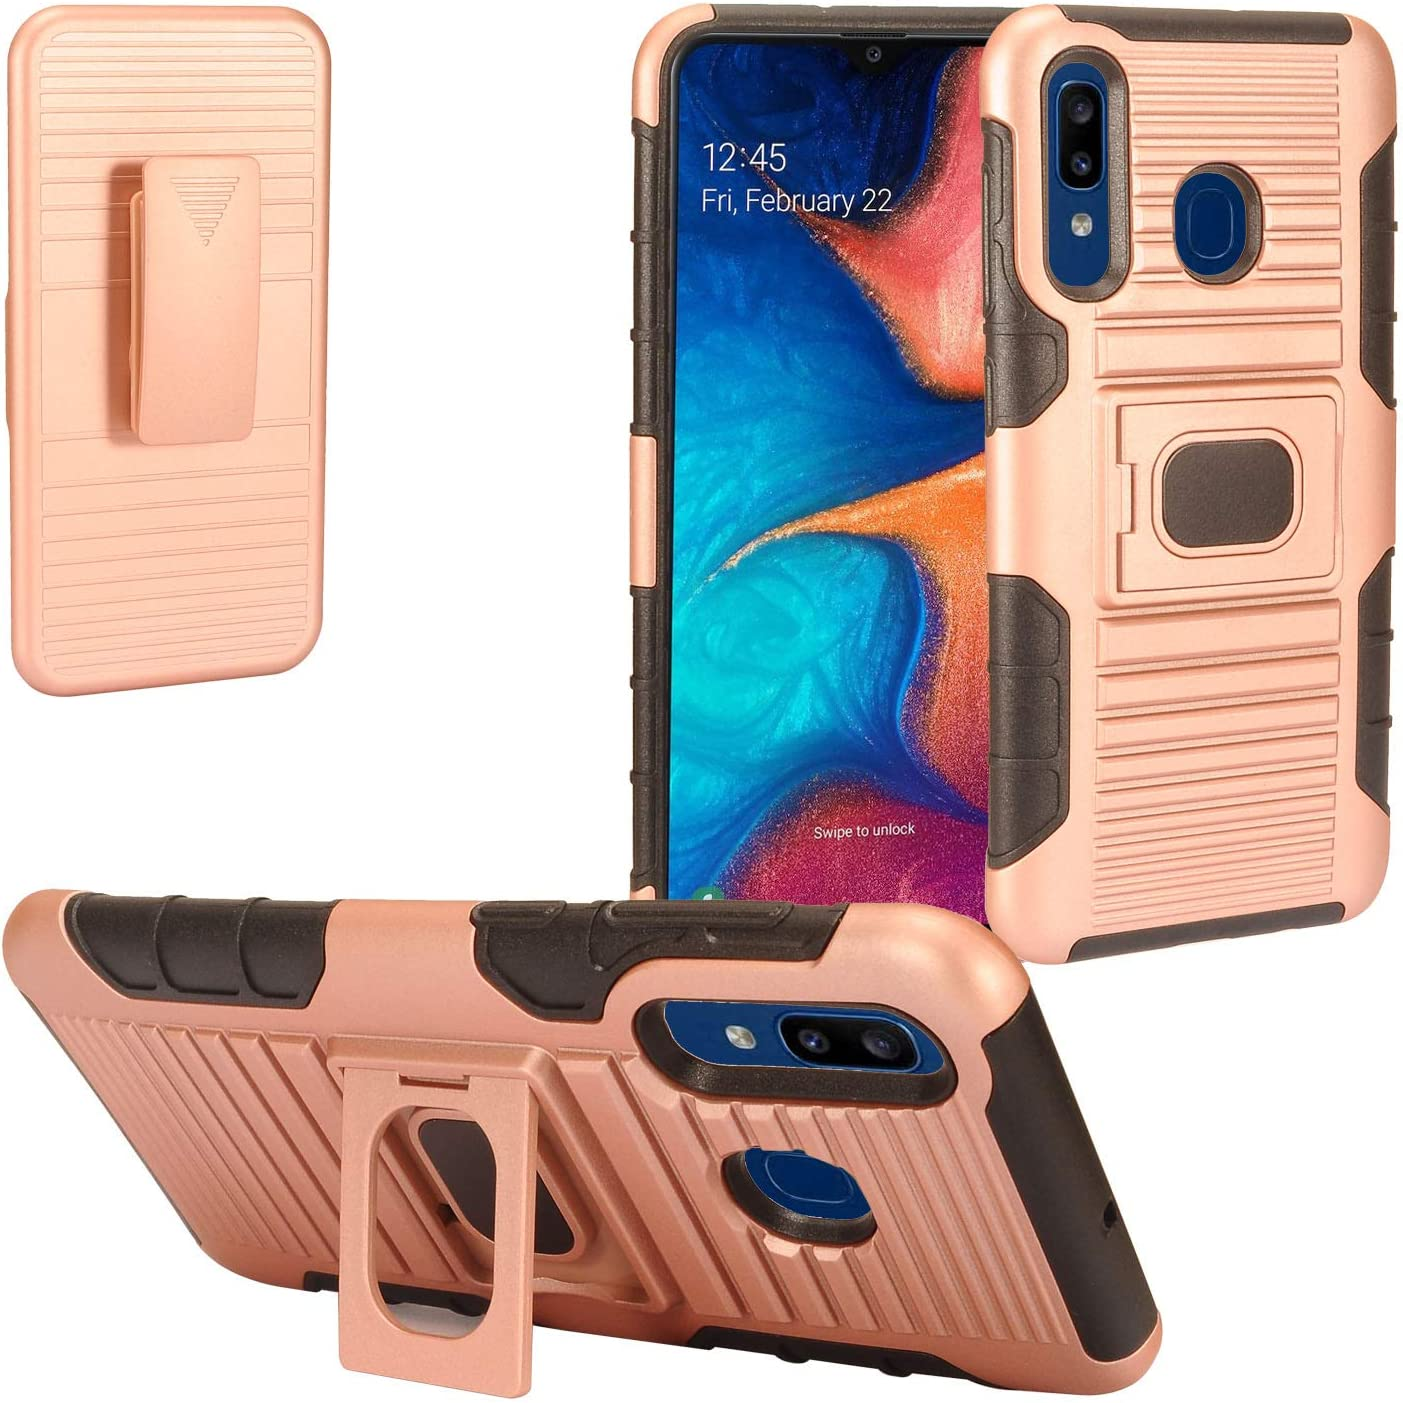 Z-GEN - Compatible with Samsung Galaxy A20, Galaxy A50 - Defender Hybrid Phone Phone Case w/Stand/Belt Clip Holster - ST5 Black/Rose Gold